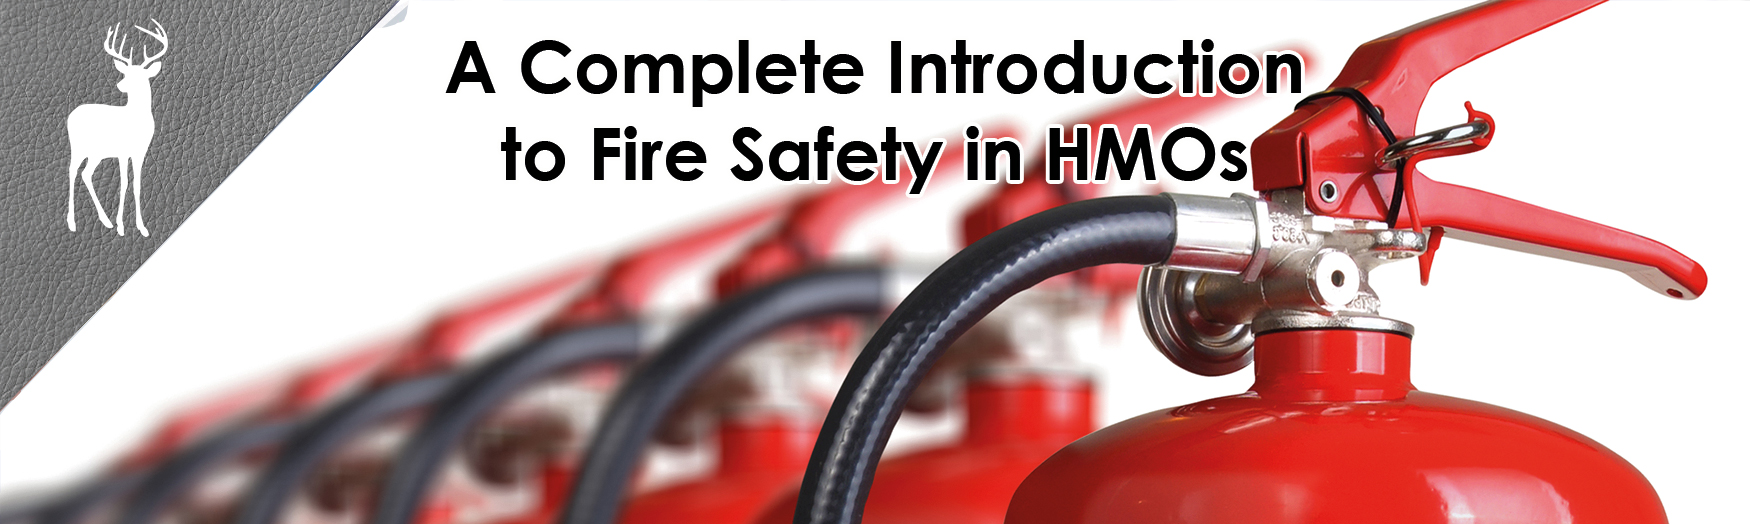 fire safe hmo, fire regulations lettings, fore regulations hmo, fire safety in hmos